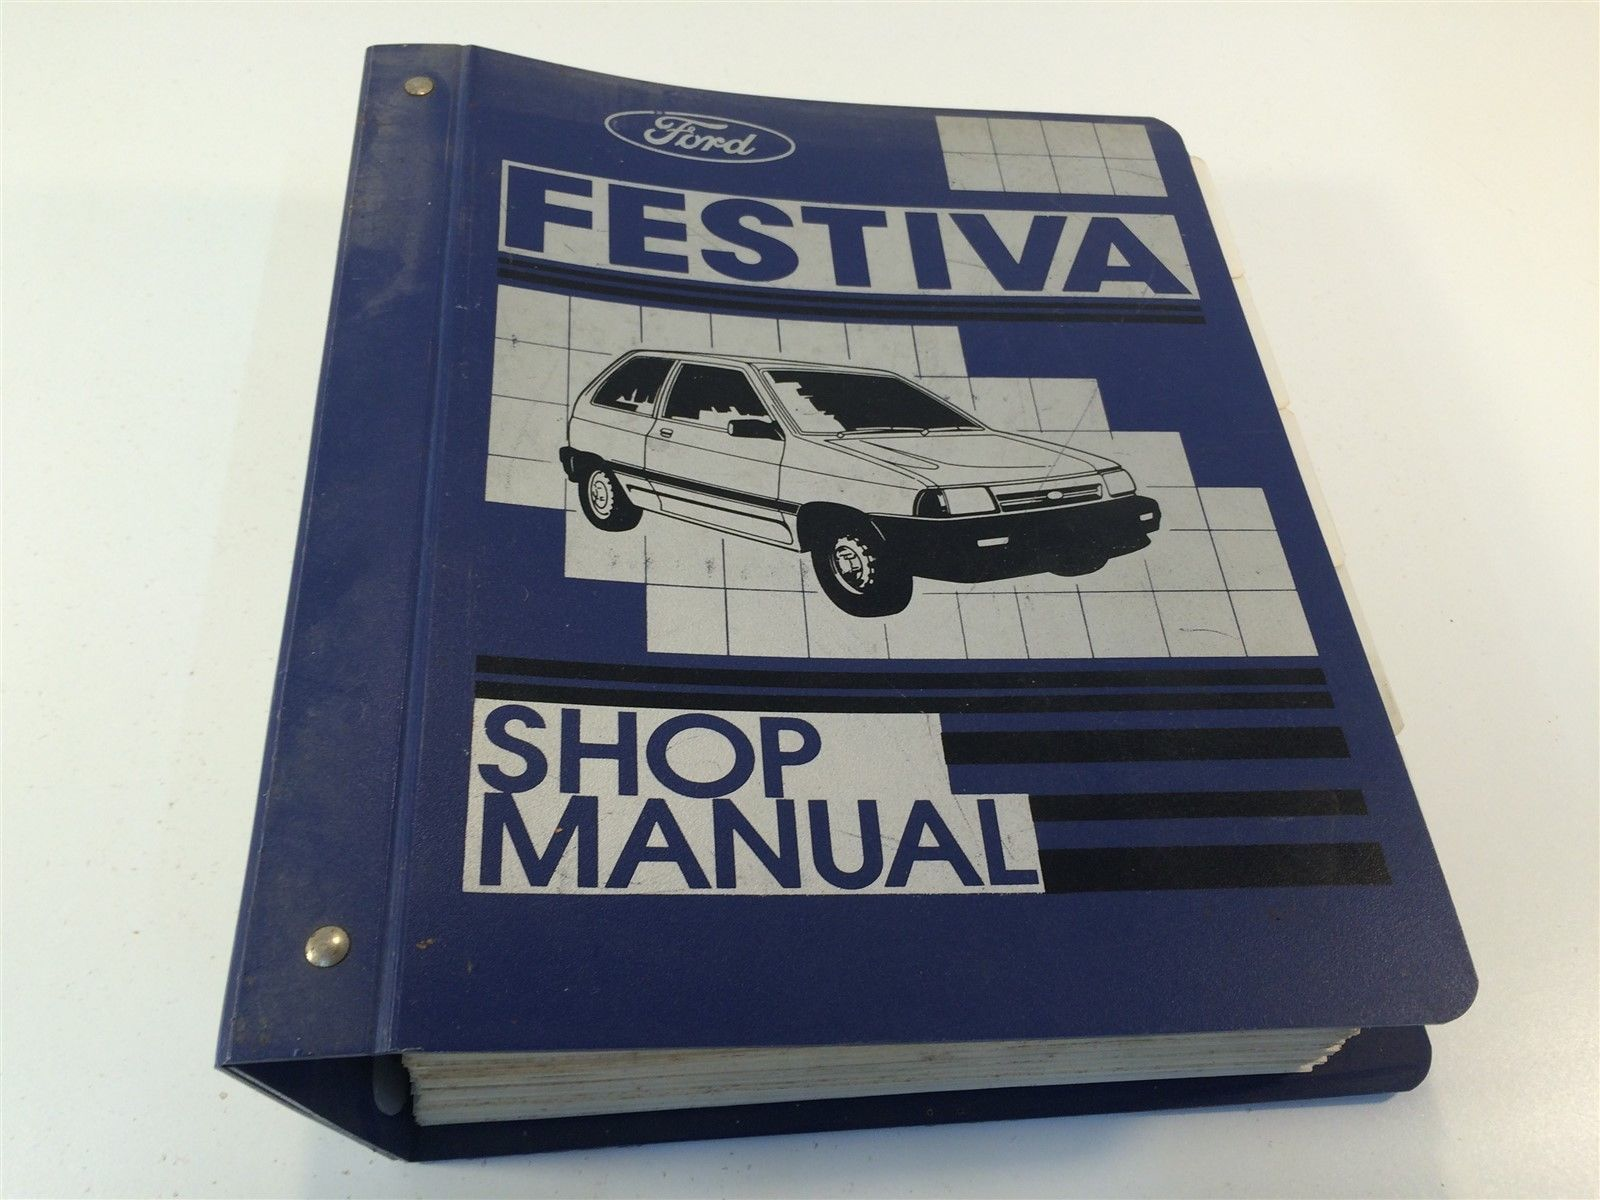 hight resolution of 1988 ford festiva loose leaf shop manual and 50 similar items s l1600